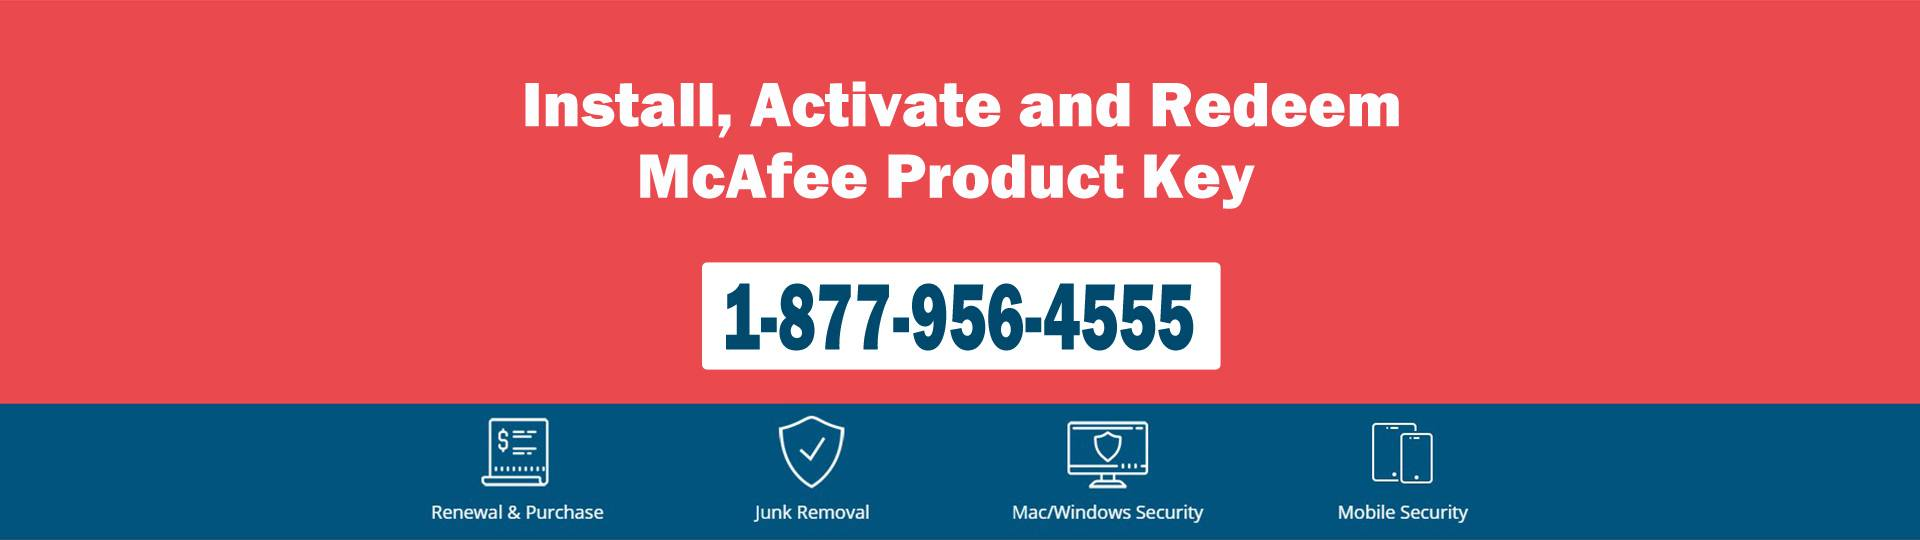 McAfee.Com/Activate With Product Key And Retail Card Download